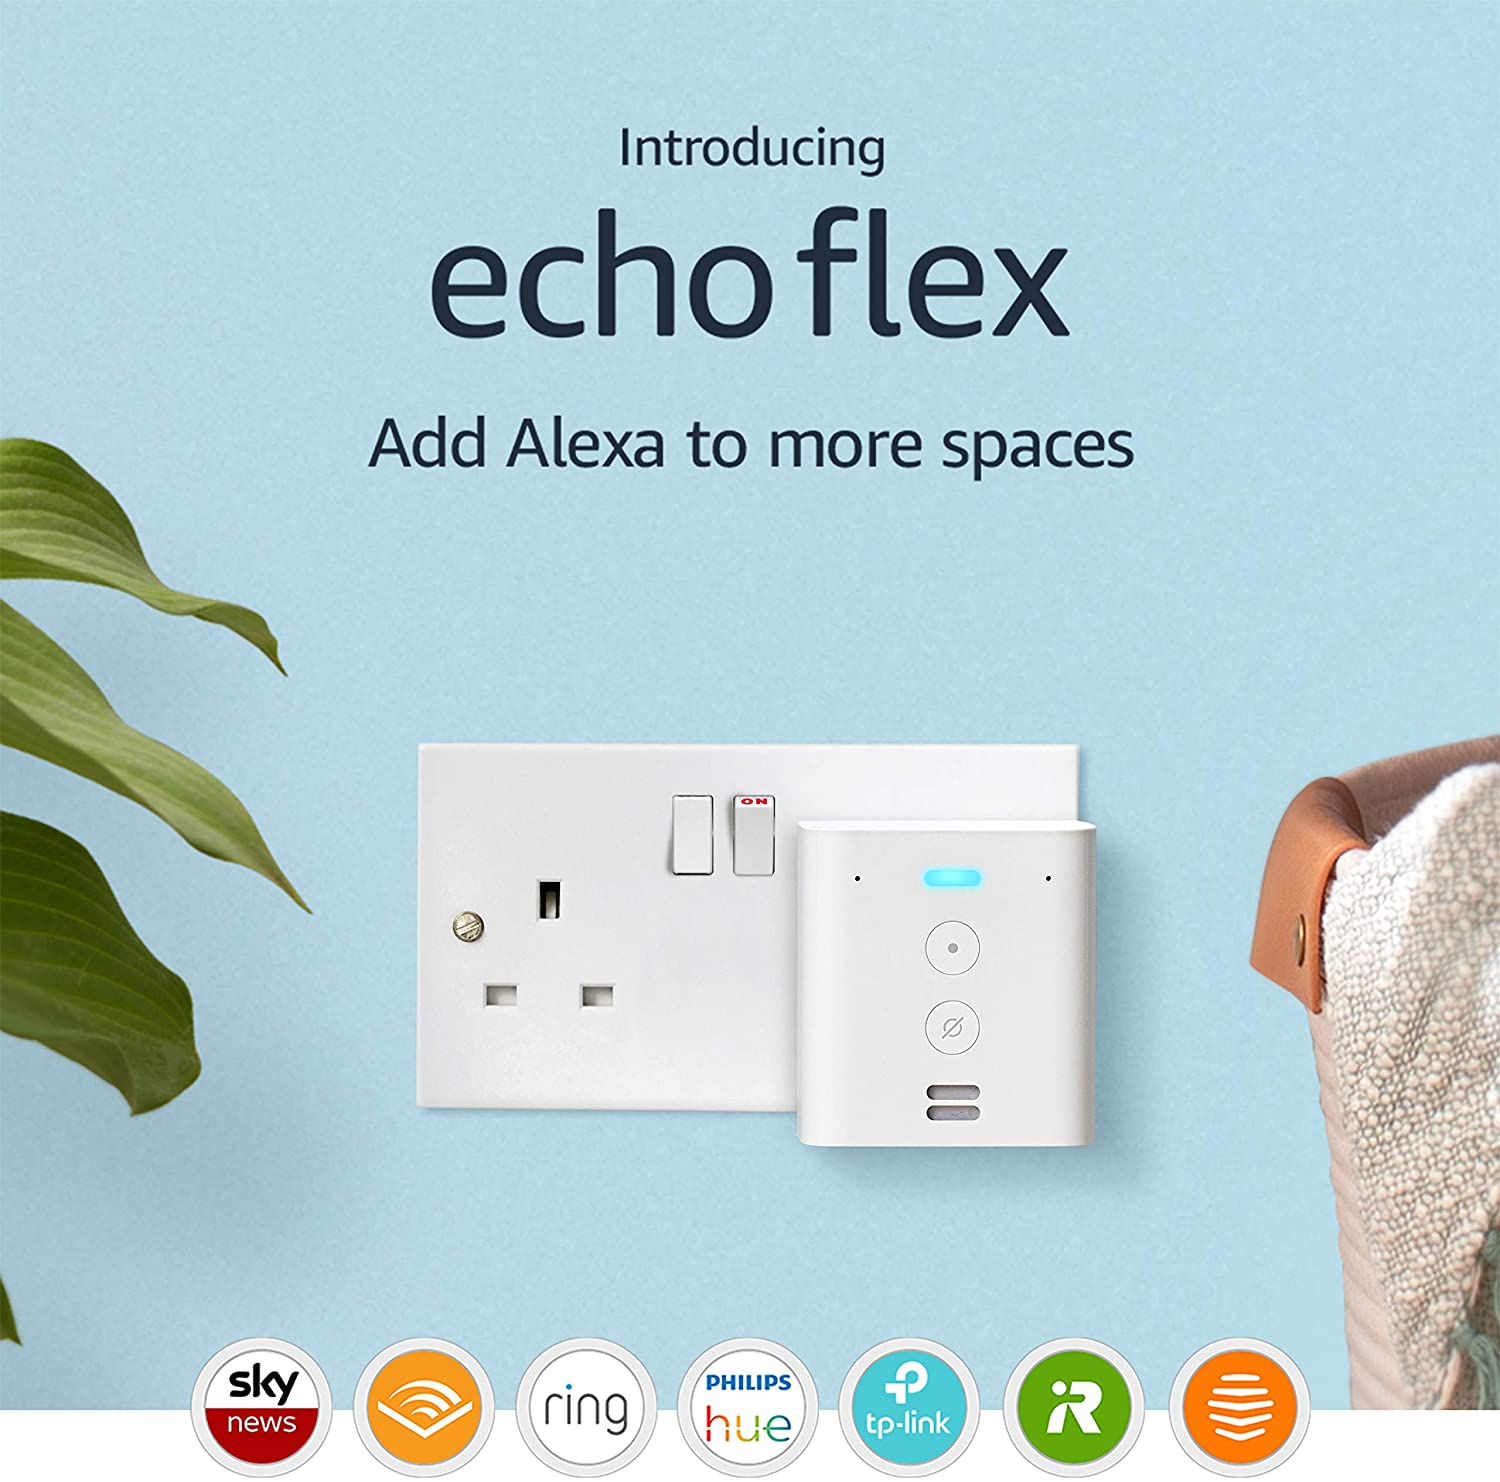 Introducing Echo Flex